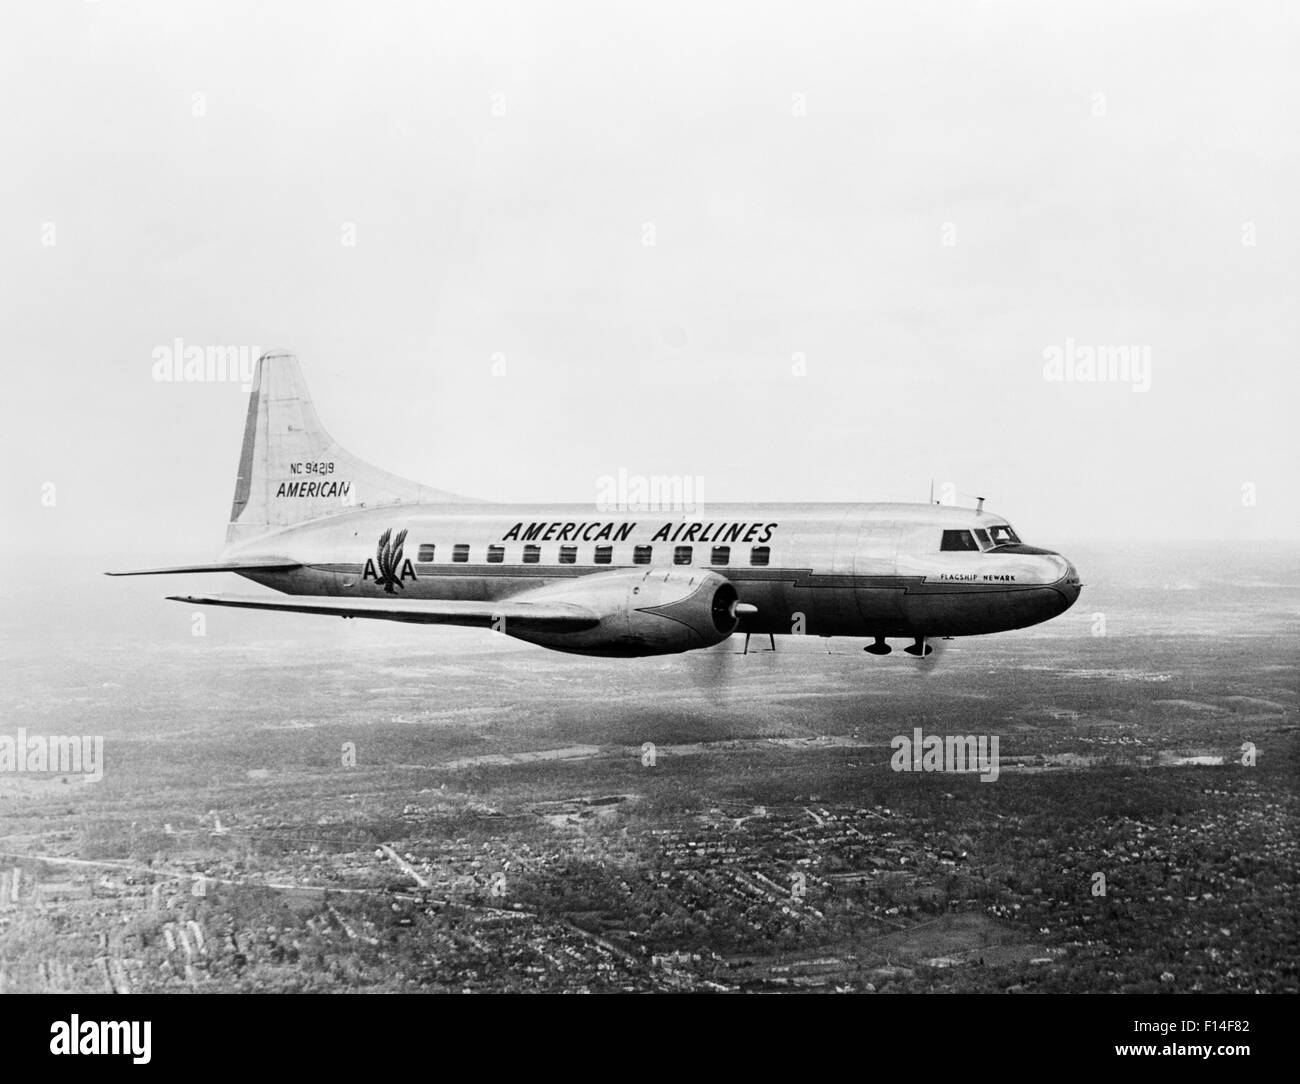 new style 03a52 7ec16 1940s 1950s AMERICAN AIRLINES CONVAIR FLAGSHIP PROPELLER AIRCRAFT IN FLIGHT  - Stock Image